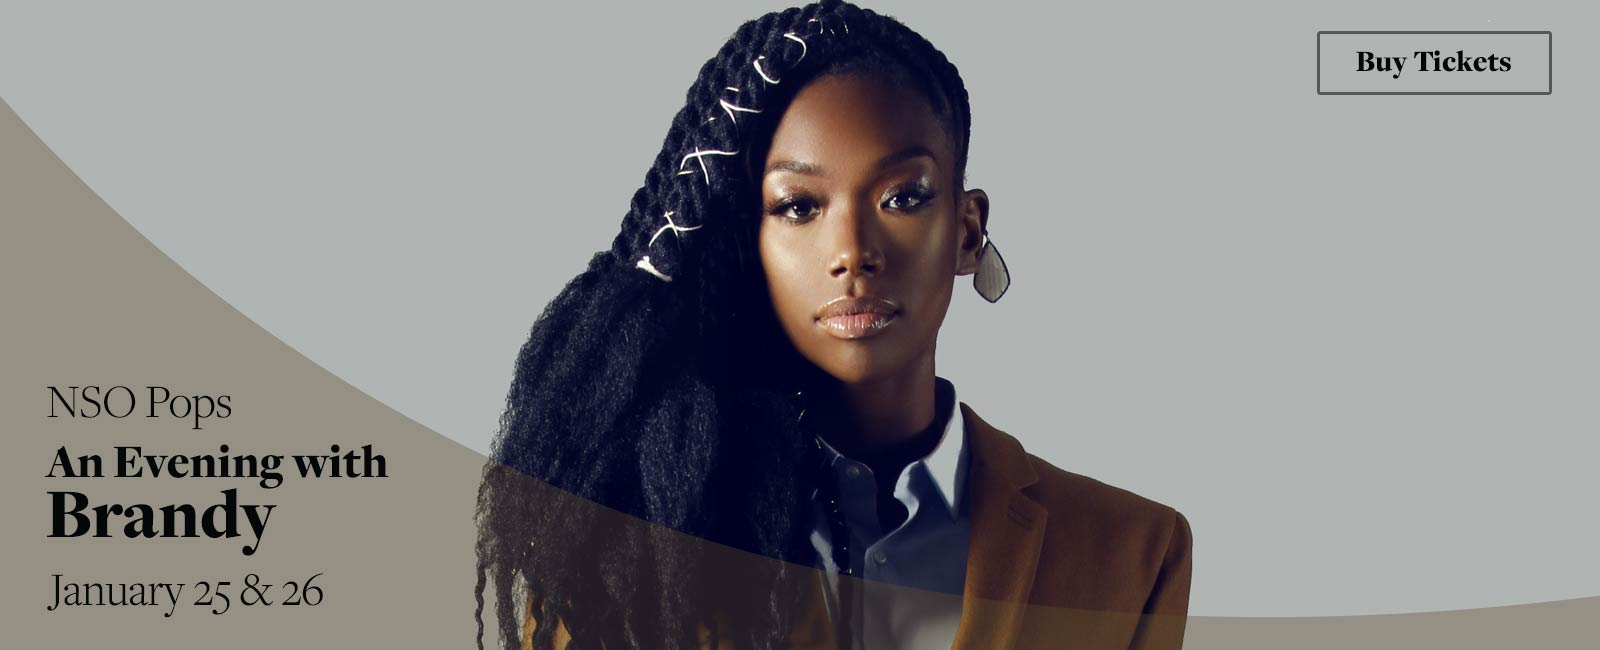 NSO Pops: An Evening with Brandy